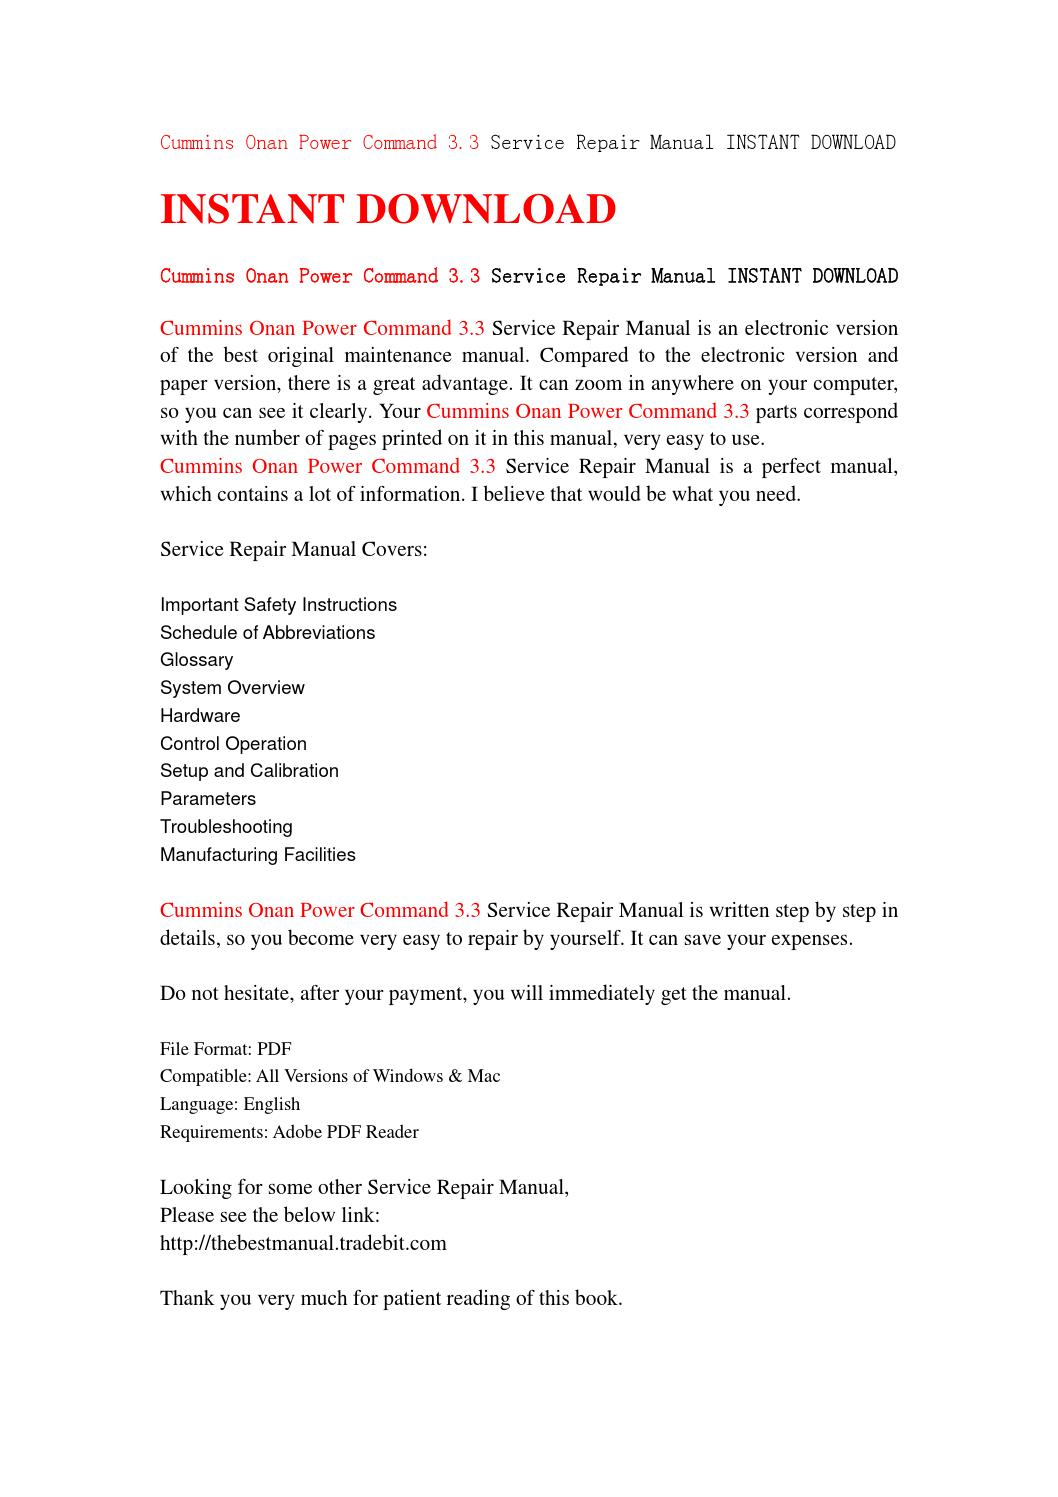 Cummins onan power command 3 3 service repair manual instant download by  sfjehfsendf - issuu